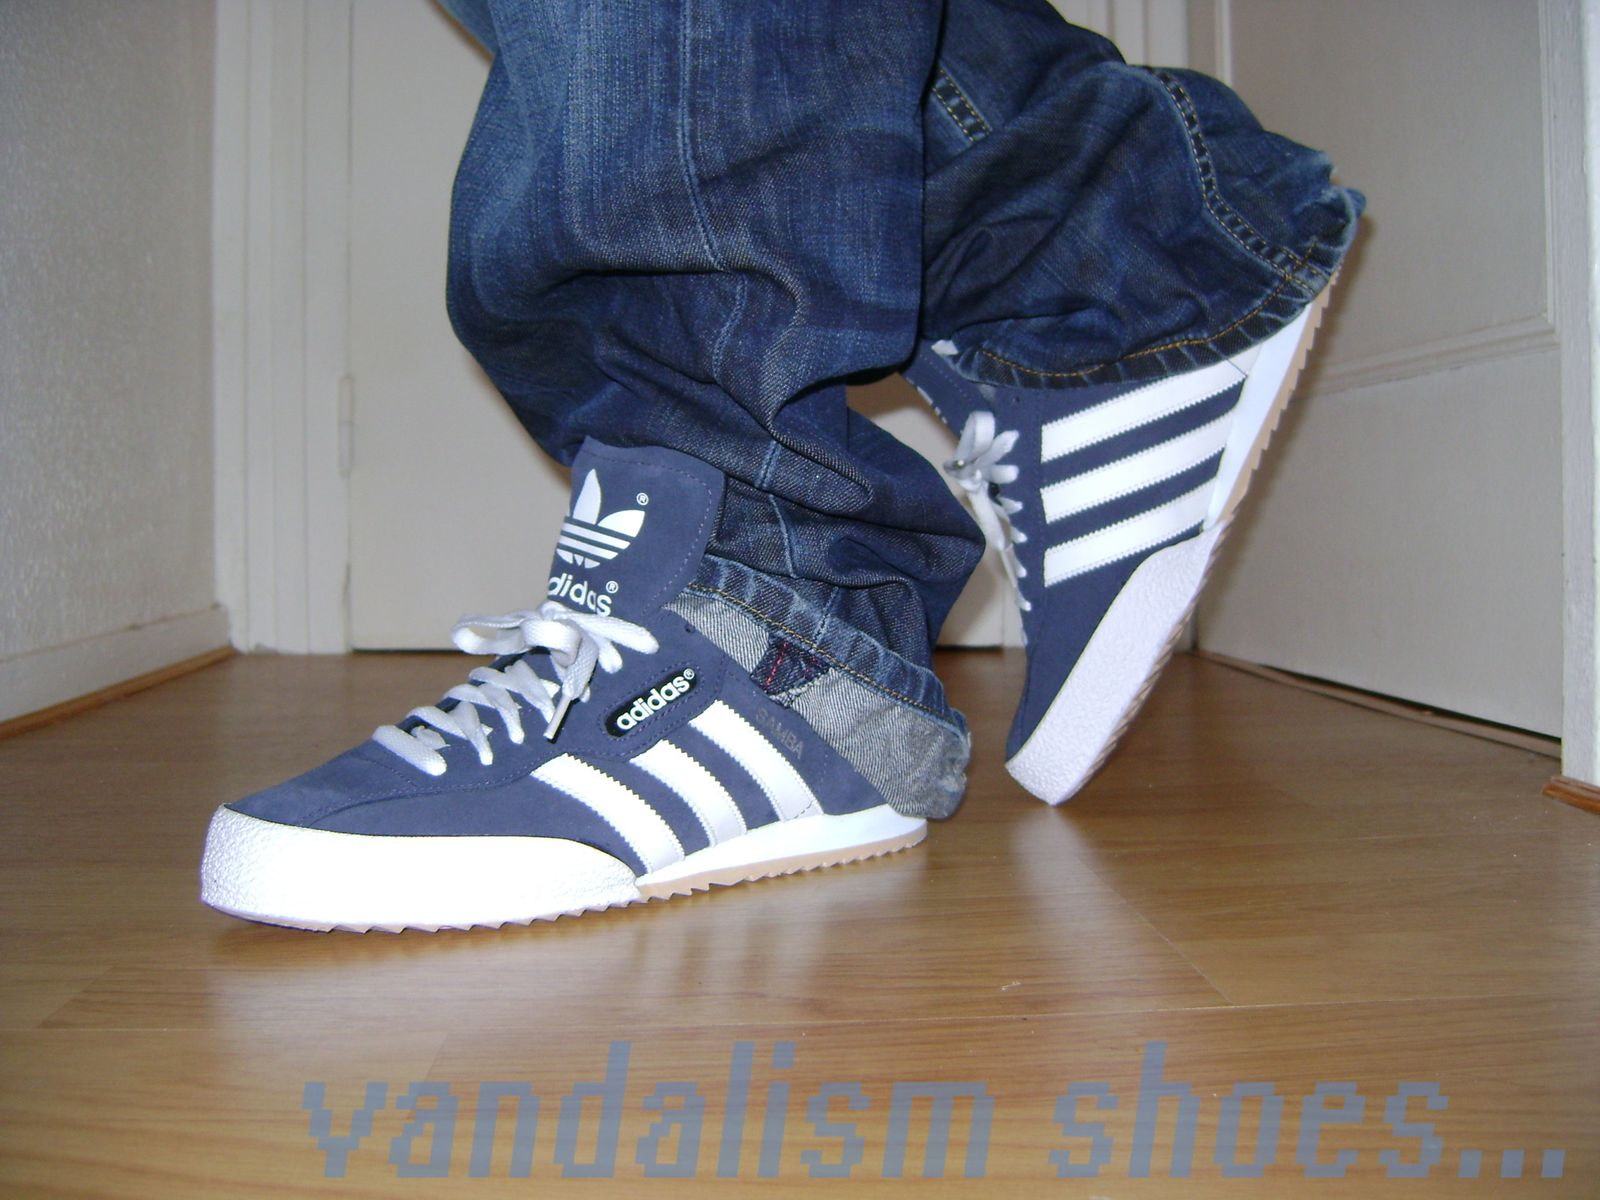 Adidas Navy & White Samba Super Suede Trainers -